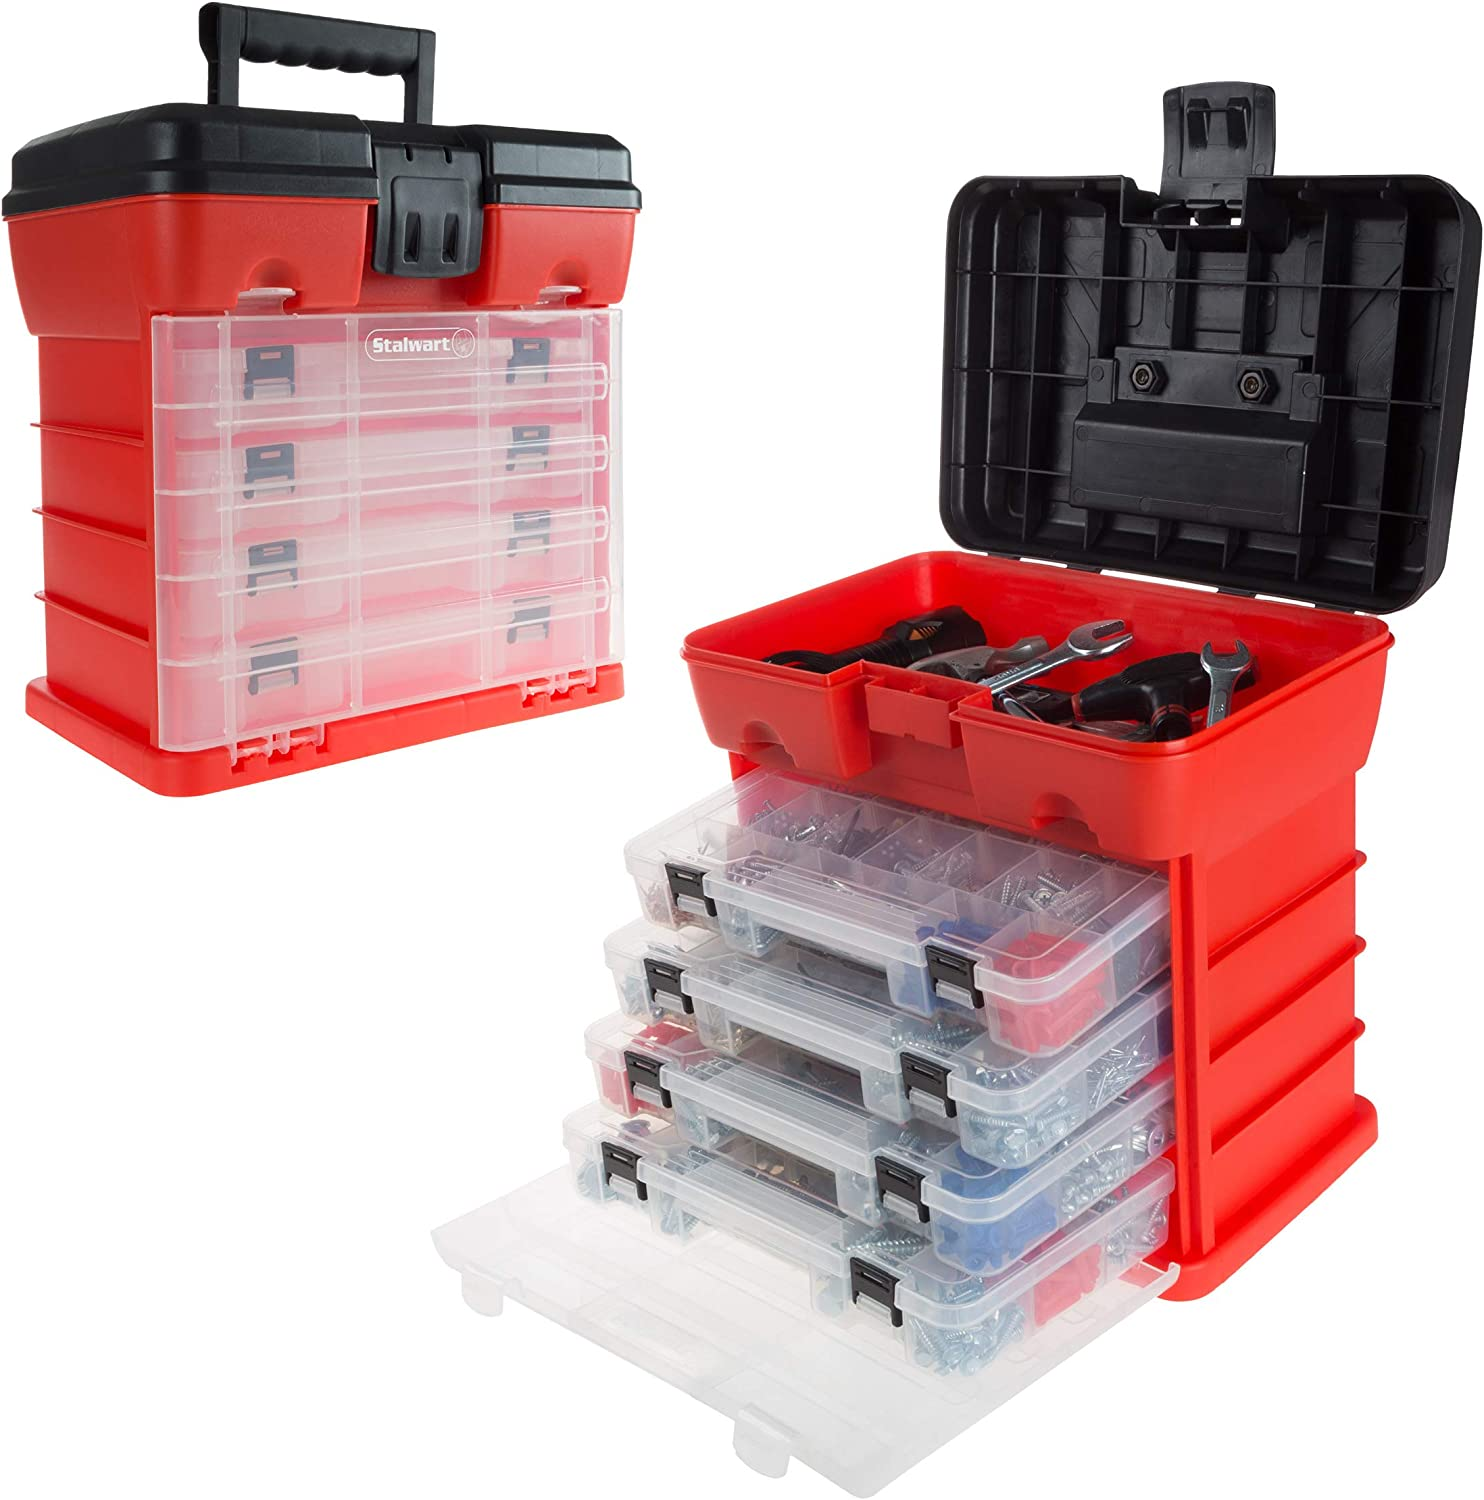 Storage and Tool Box- Durable Organizer Box with 4 Max 68% OFF Utility Las Vegas Mall Compa